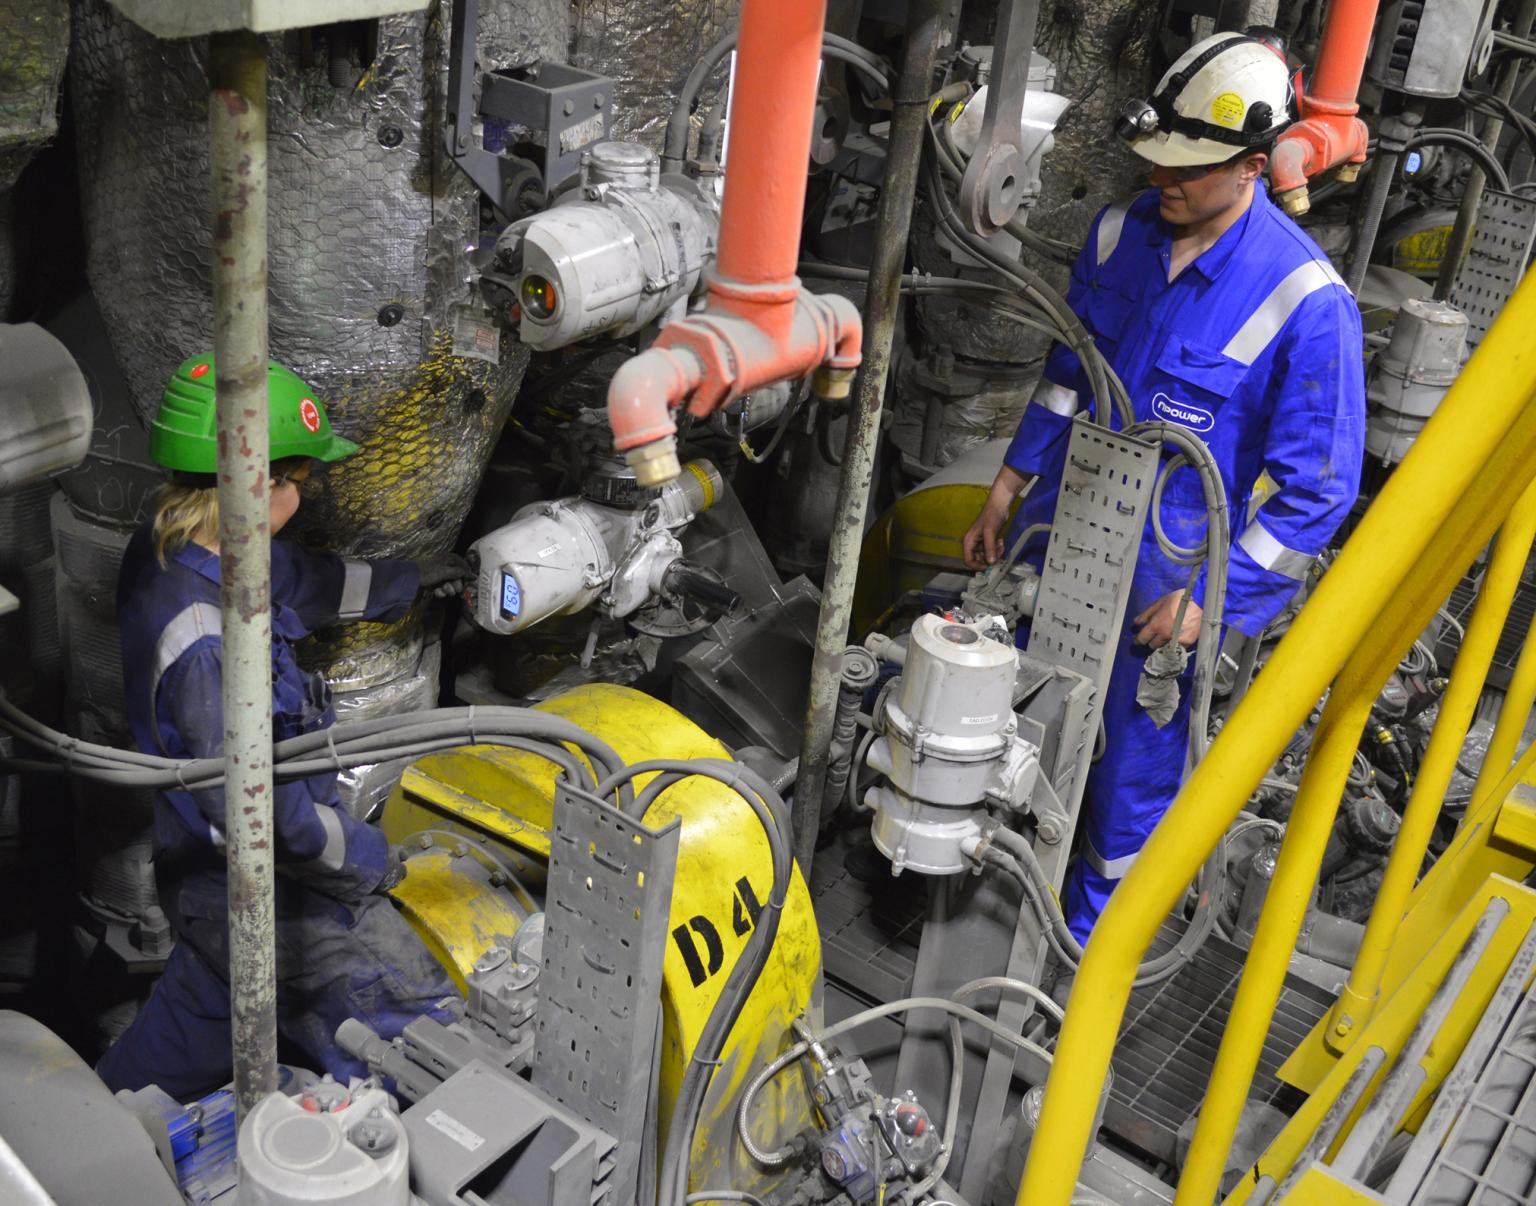 Electrical engineering staff at RWE Aberthaw Power Station inspect some of the Rotork IQ and IQT valve actuators installed on the Lo NOx plant